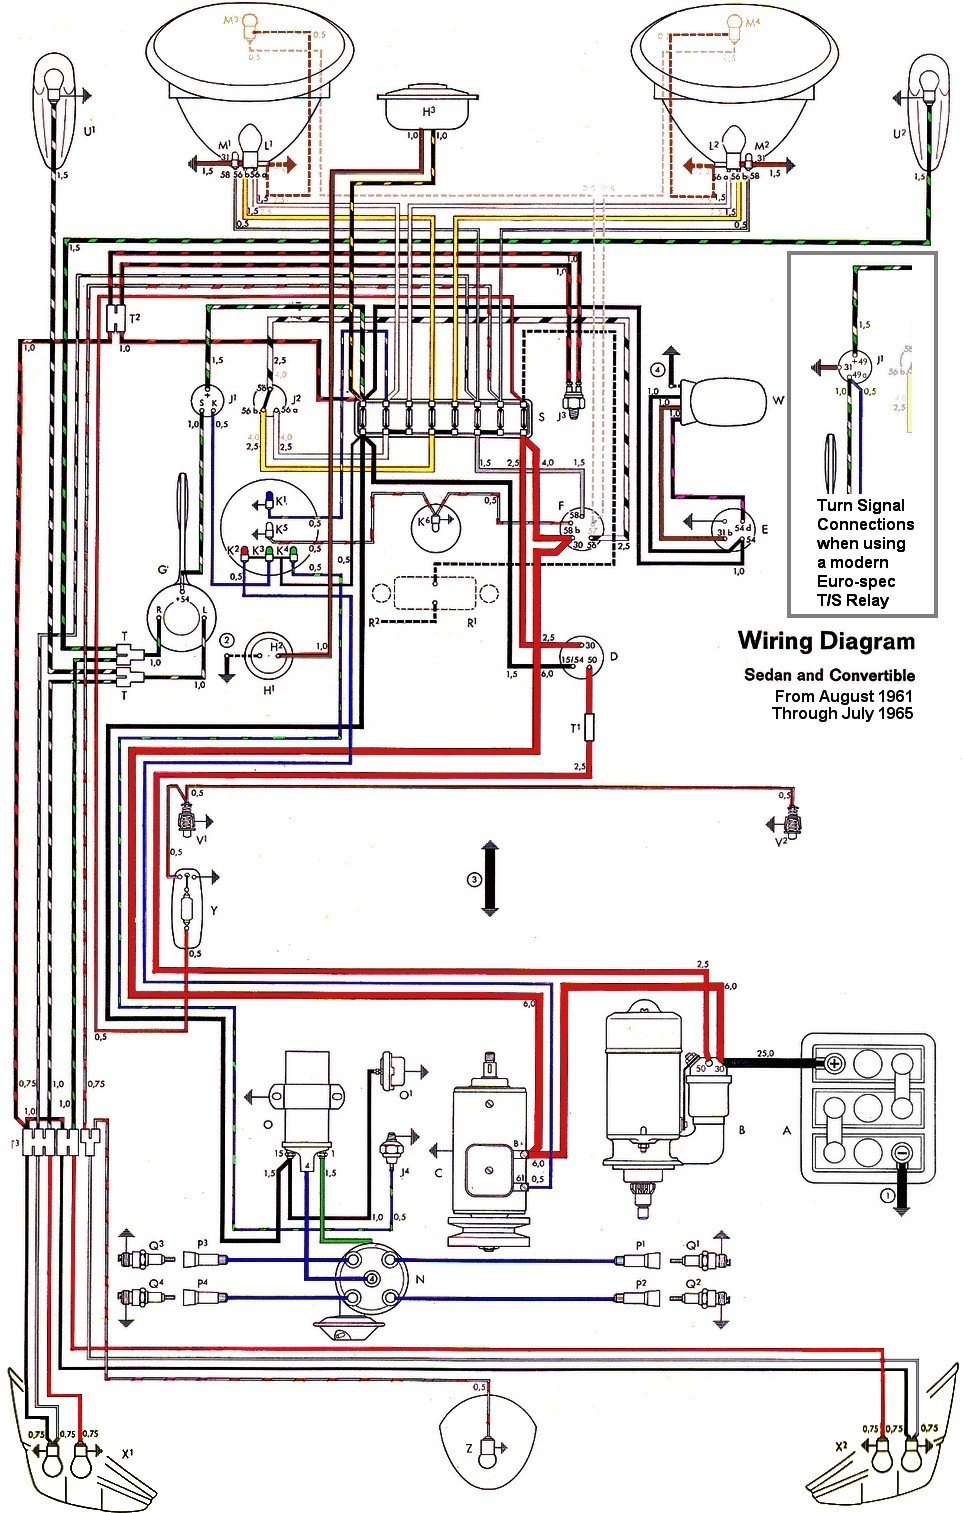 bug_62 65withinset thesamba com type 1 wiring diagrams vw beetle wiring diagram at mr168.co